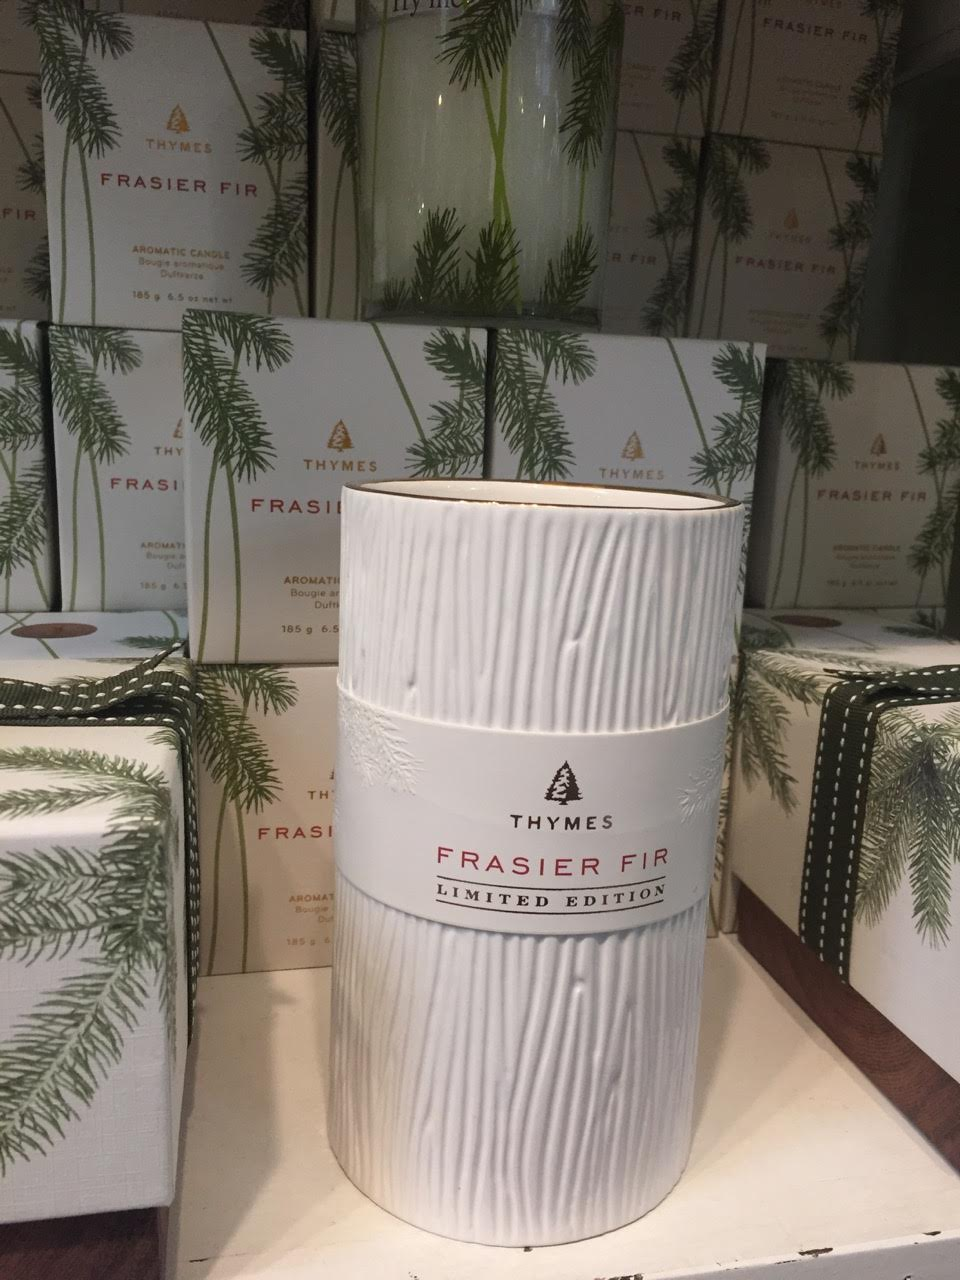 Frasier Fir goodies range from $9.99-$49.99.